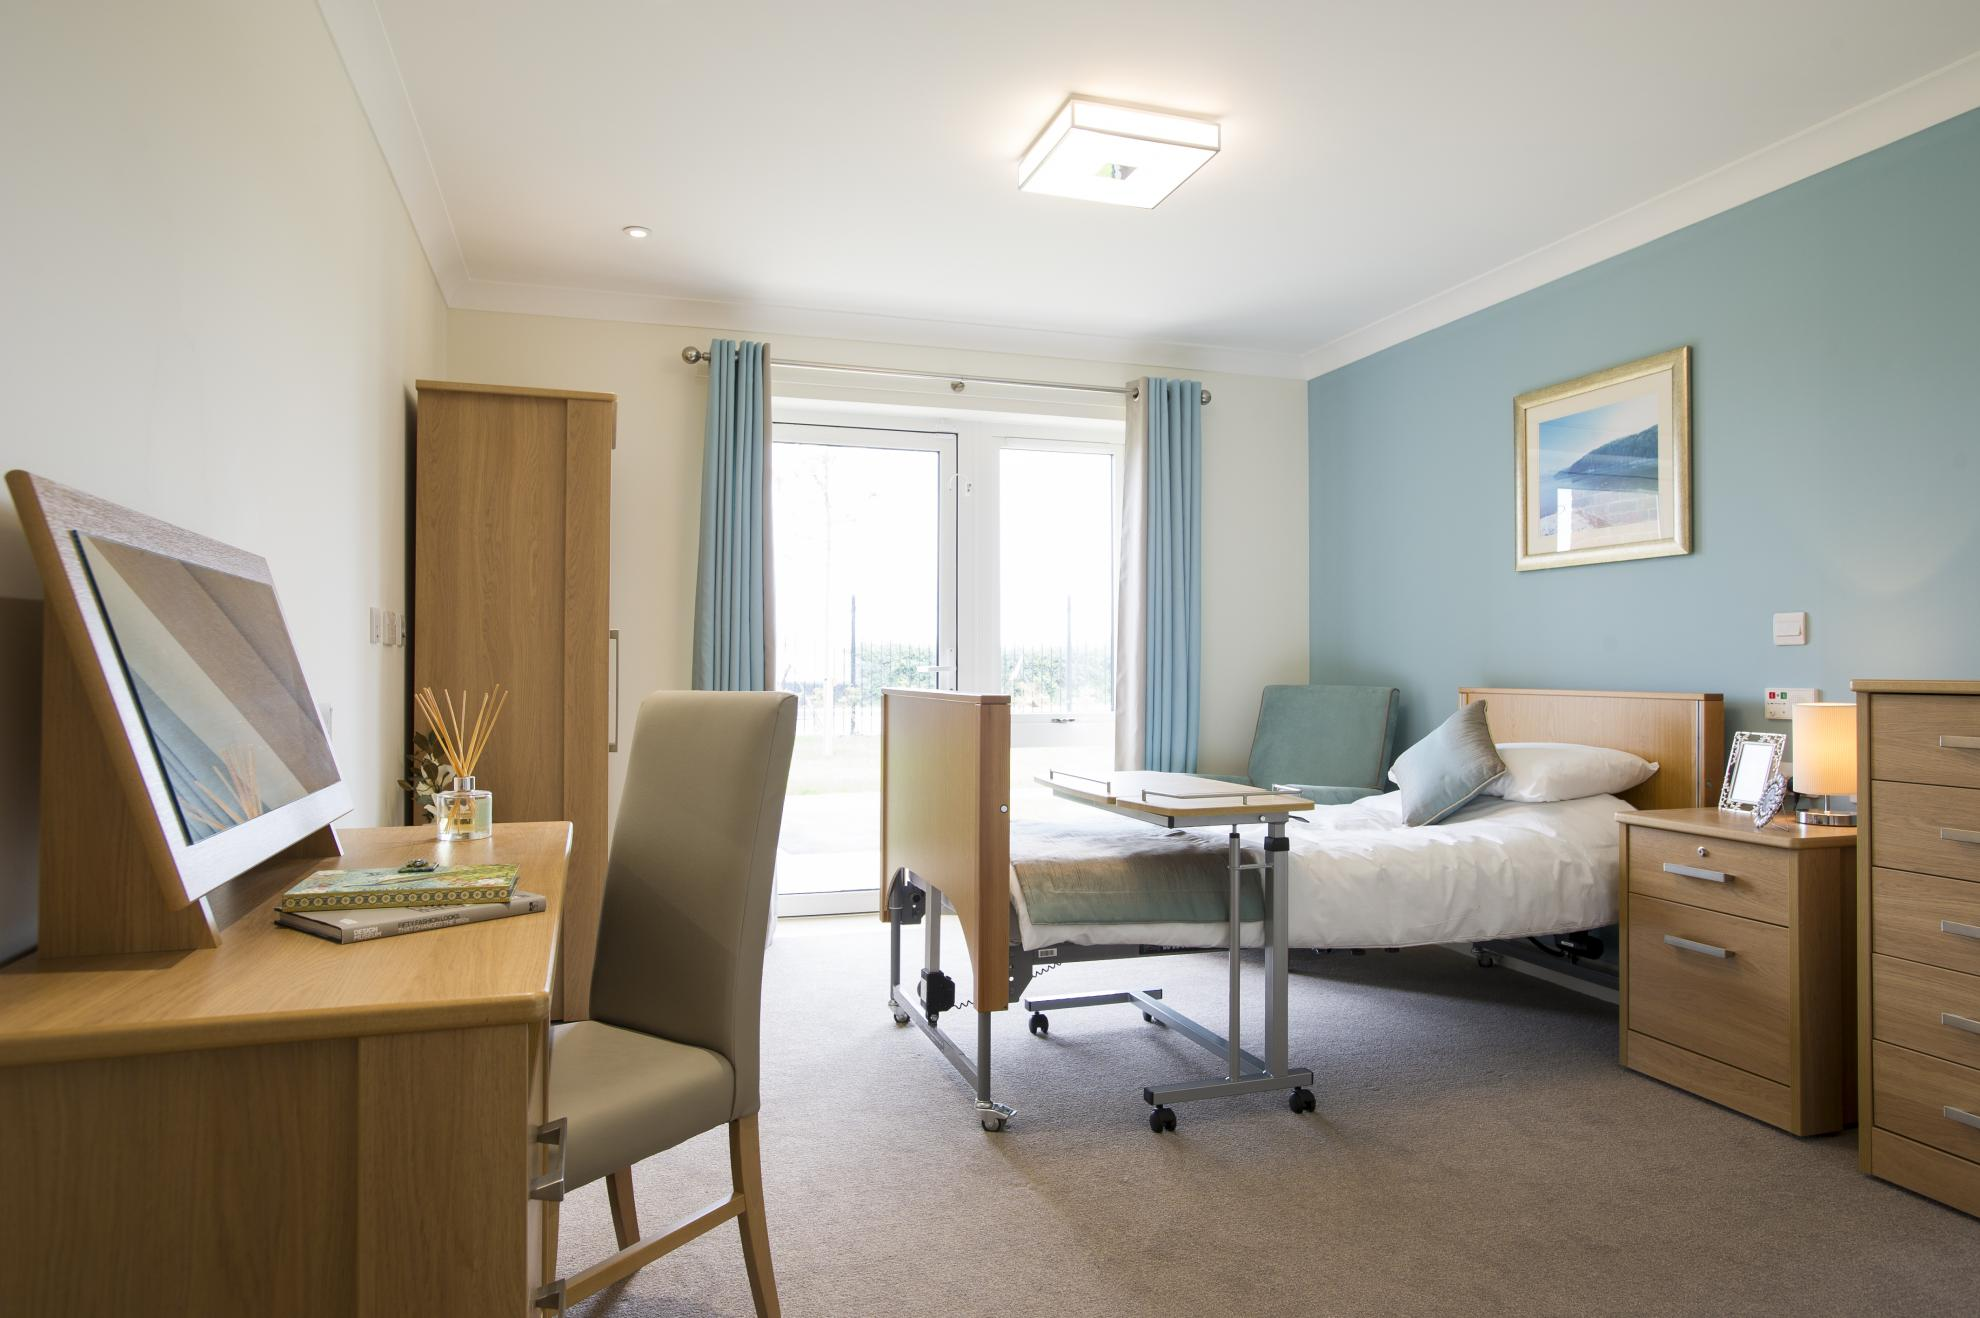 Dementia And Nursing Care Home In Hersden Meadow View Sanctuary Care